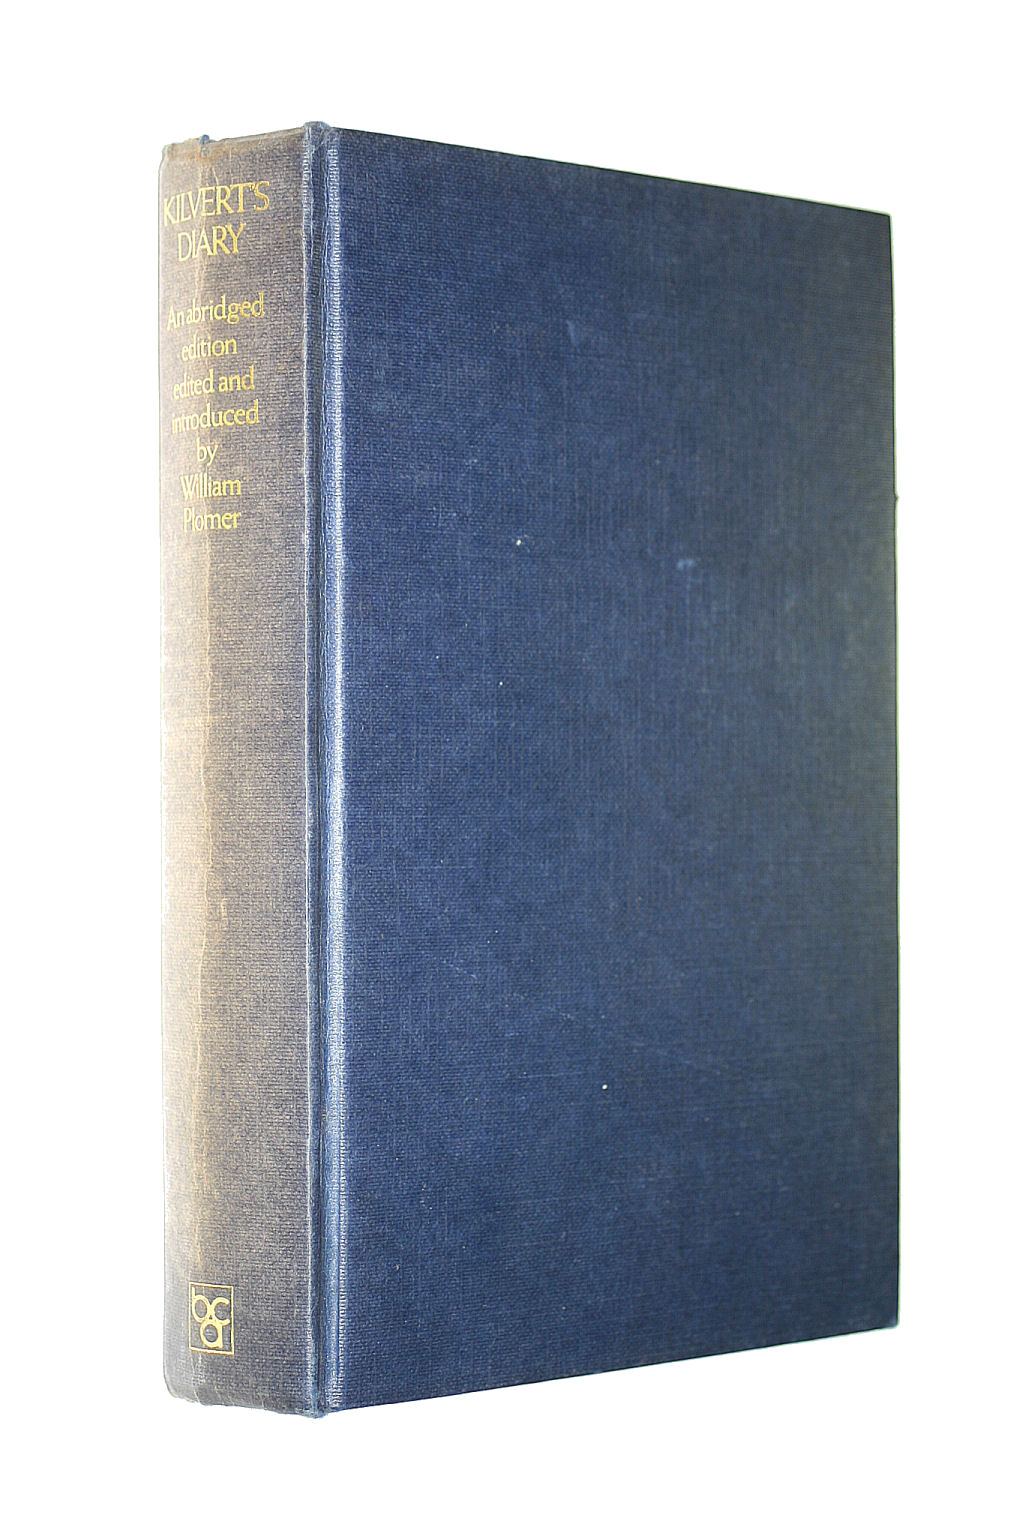 Image for Kilvert's Diary 1870-1879 Selections from the Diary of The Rev. Francis Kilvert